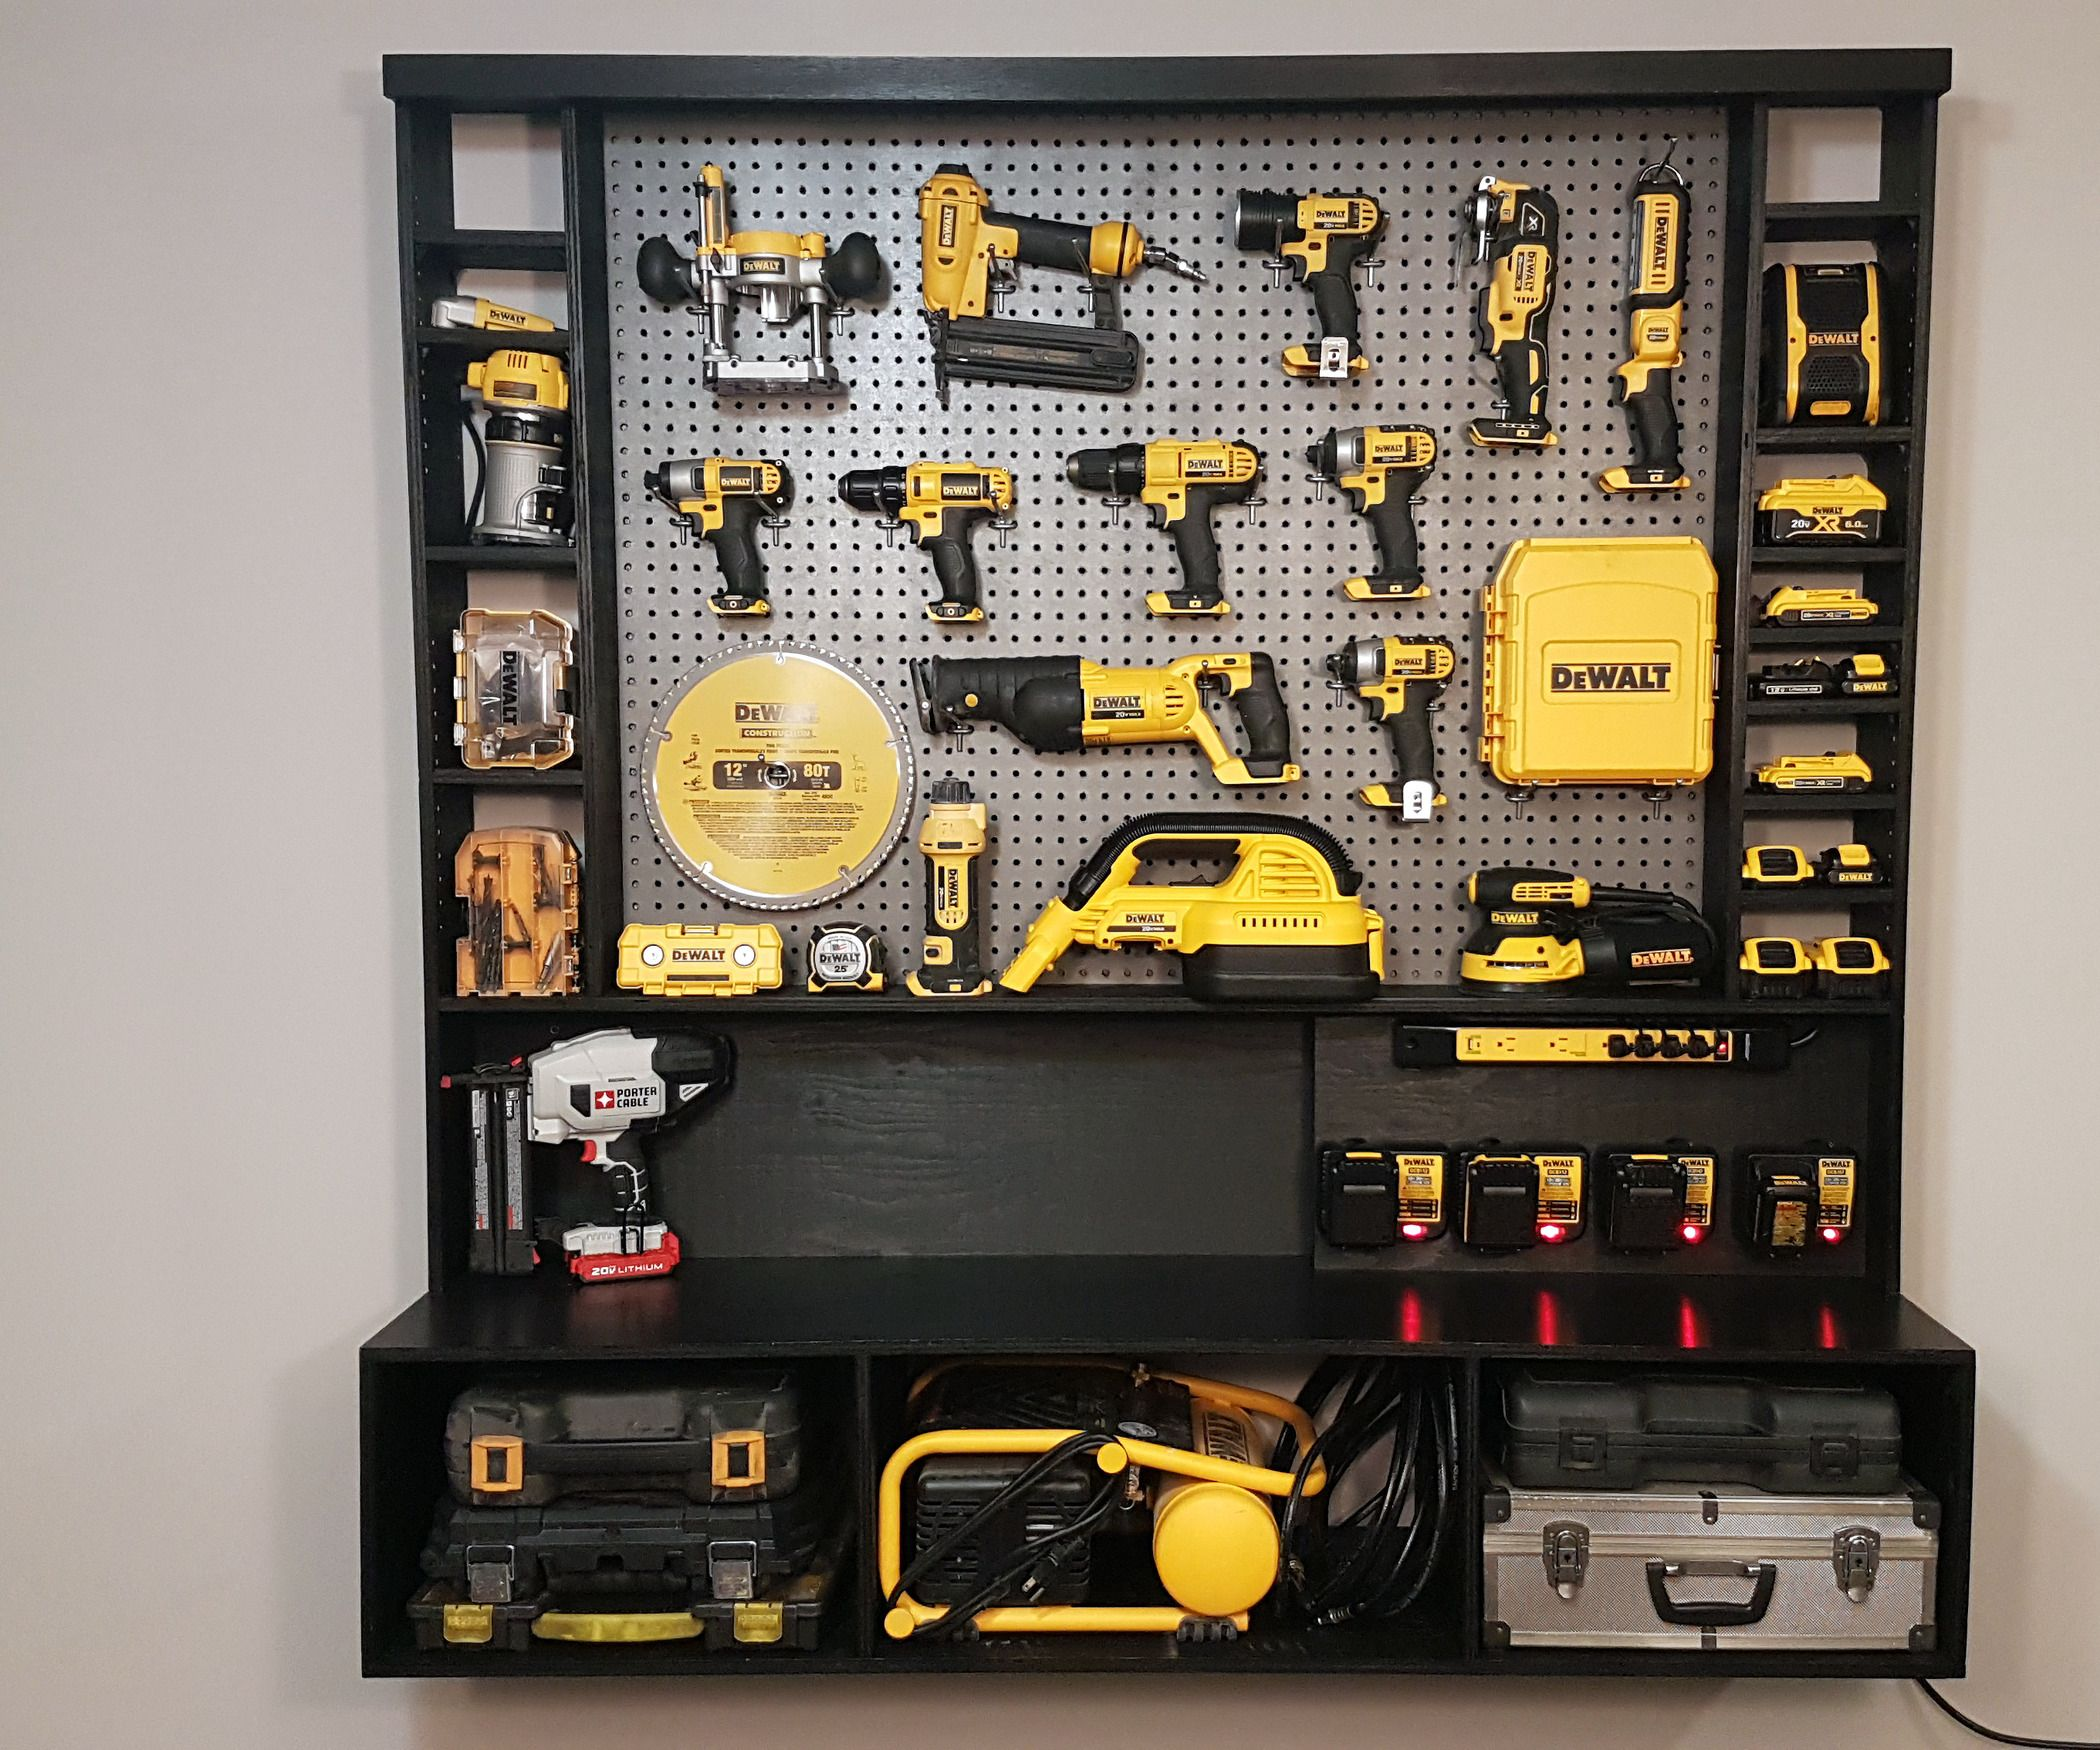 Diy Power Tool Storage W Charging Station Tool Wall Storage Tool Storage Diy Power Tool Storage